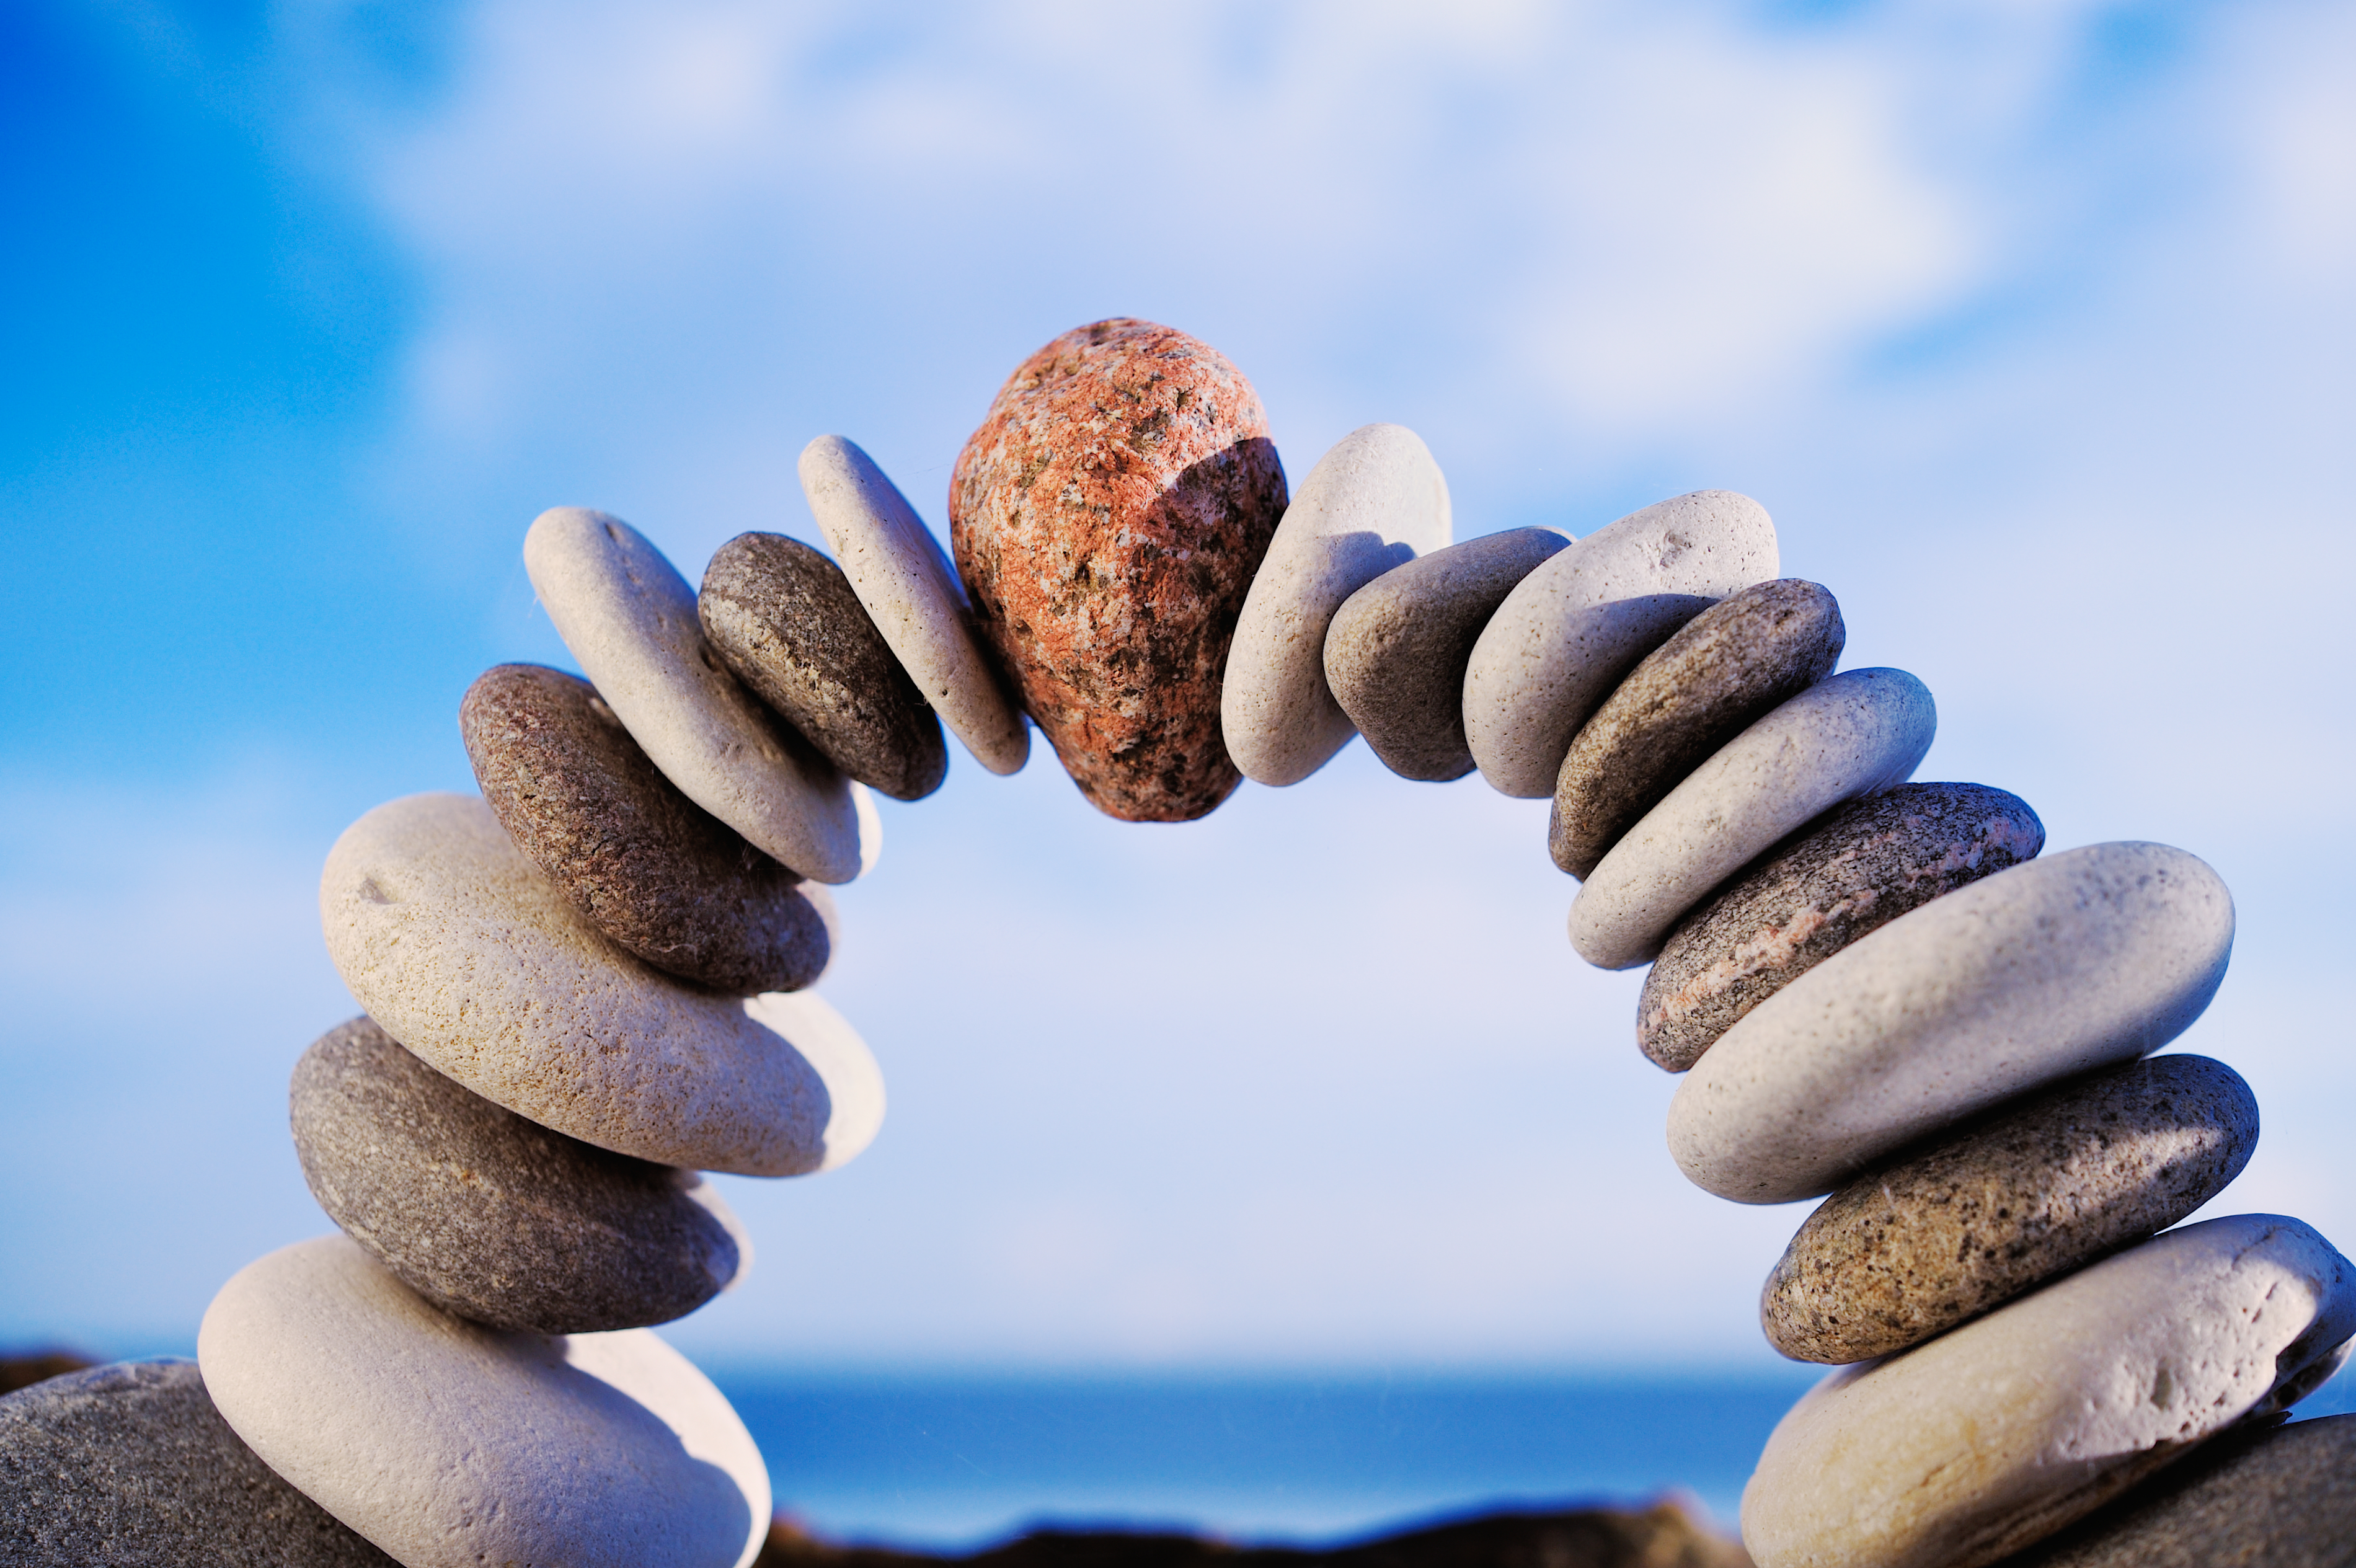 Meditation - rocks stacked in an arch and blue sky